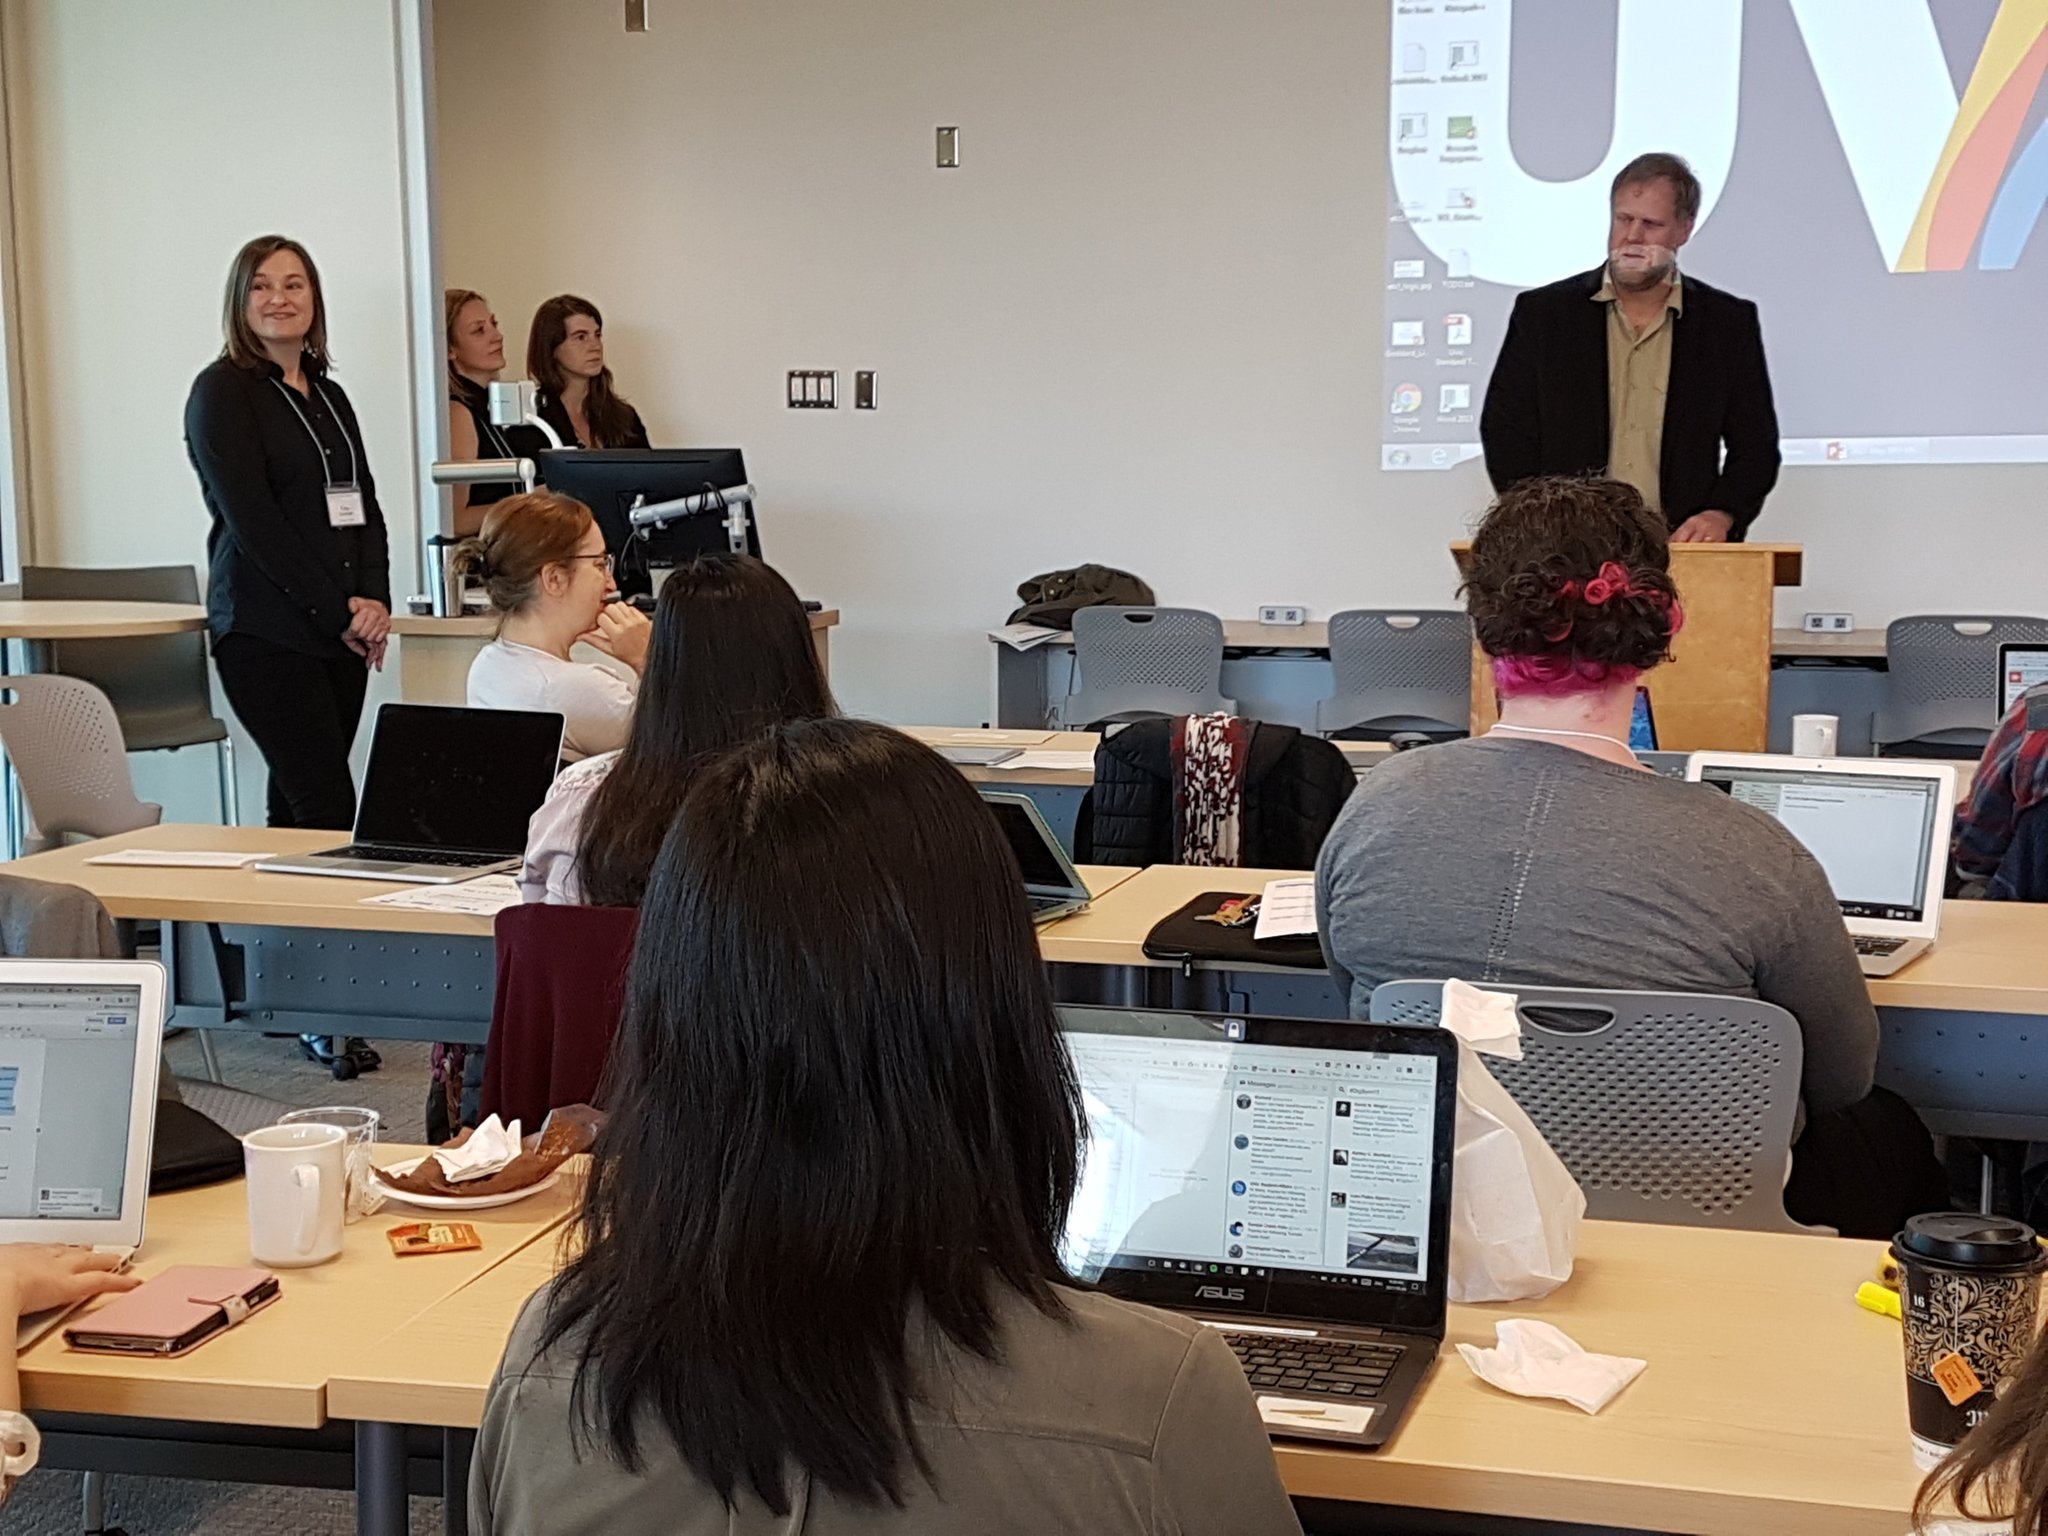 launching new digital pedagogy space @UVicLib with #digsym17 symposium, a collaboration w/@DHIL_SFU @uvic @sfu @SSHRC_CRSH https://t.co/vjQwu0bidW